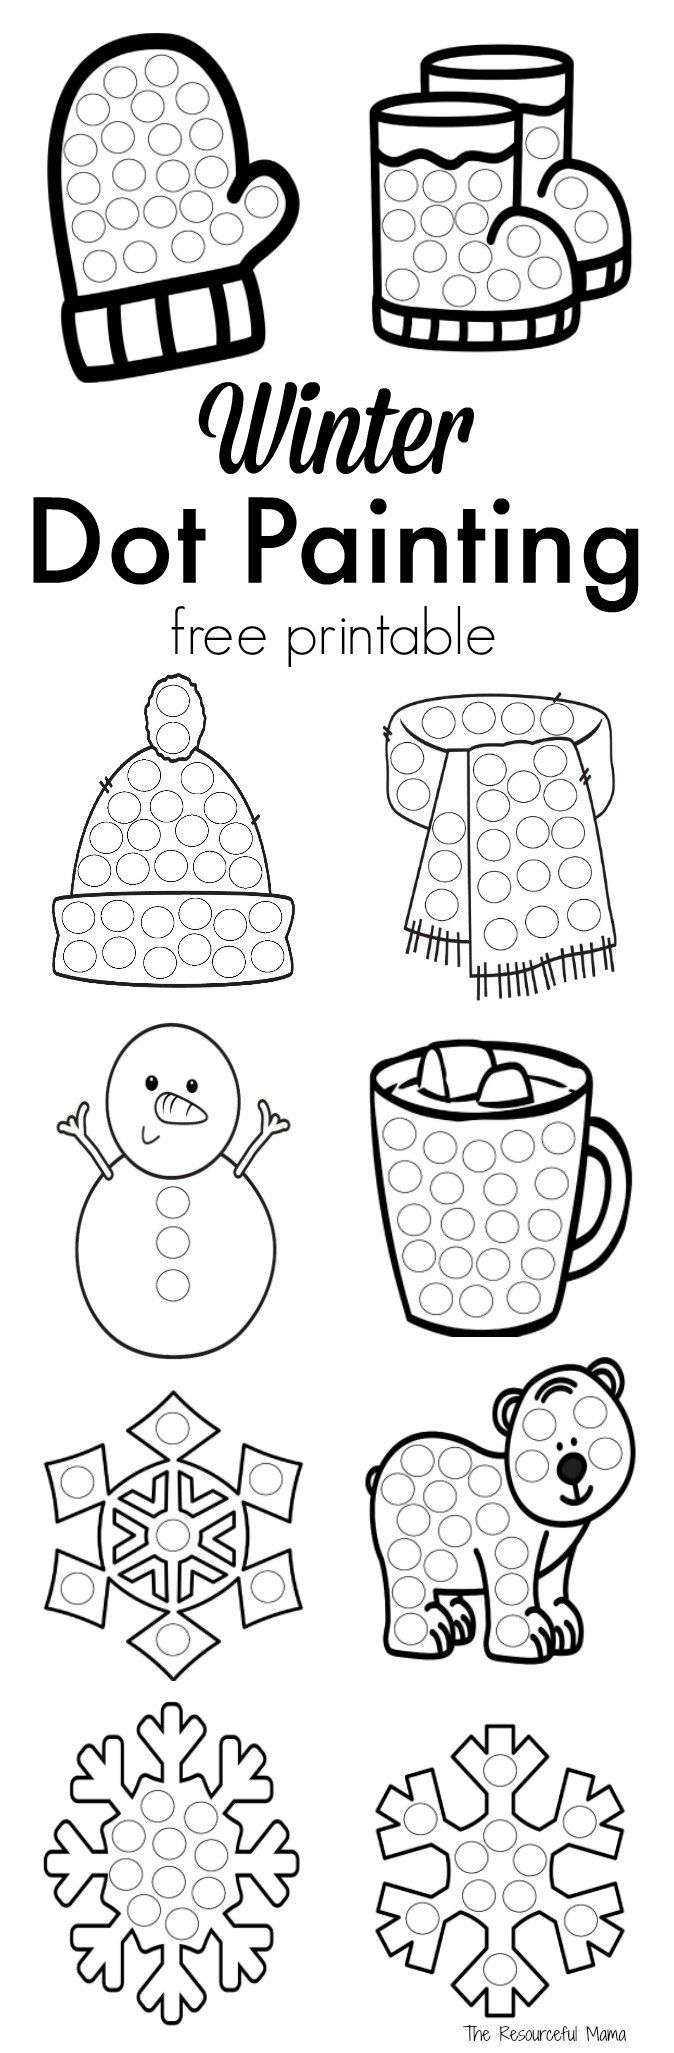 1b coloring pages | 21 Bingo Marker Coloring Pages Collection - Coloring Sheets